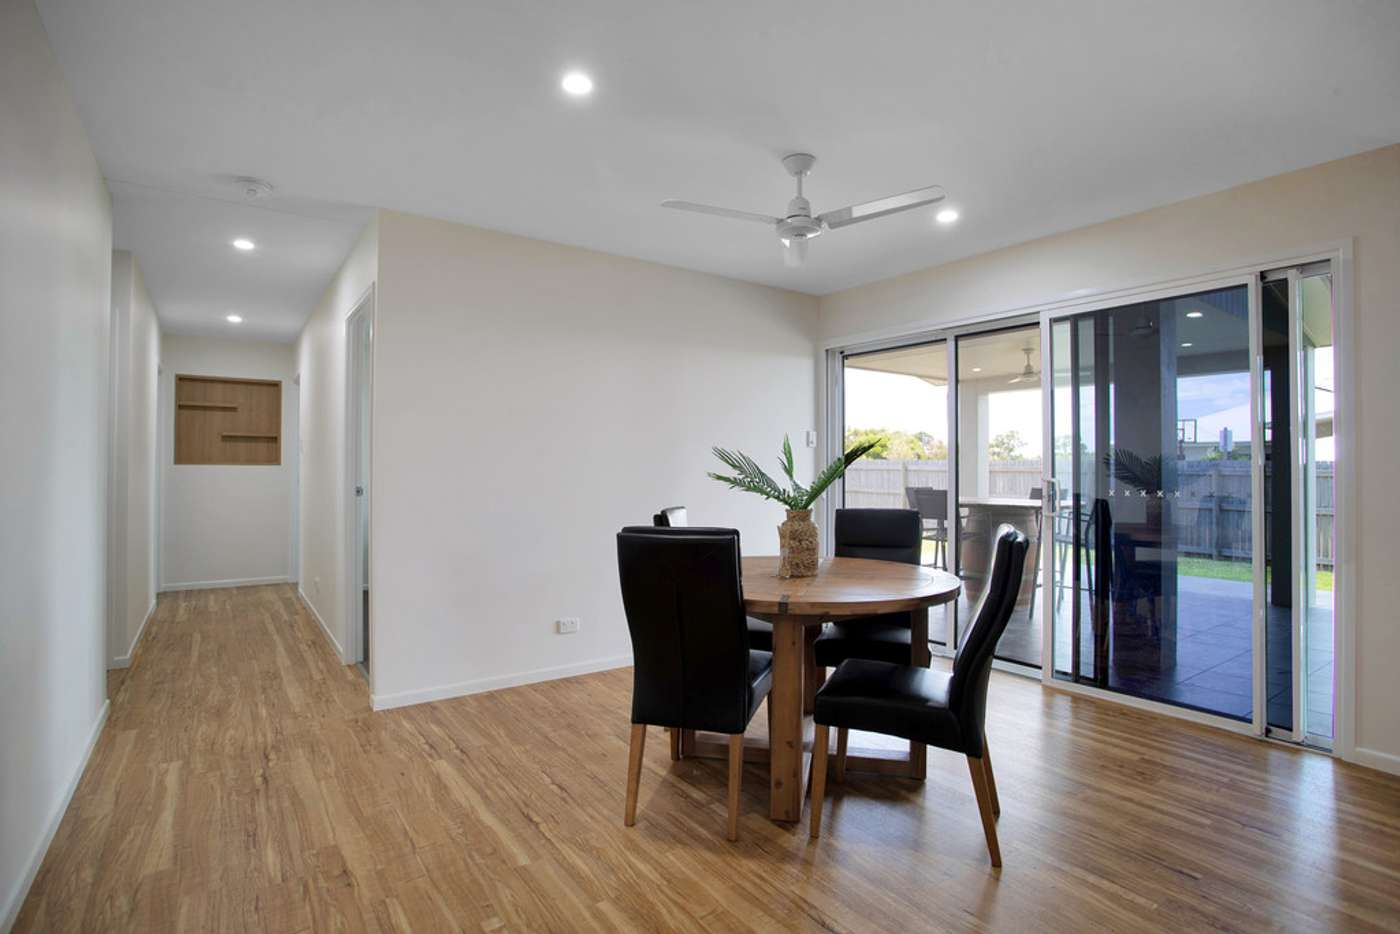 Seventh view of Homely house listing, 17 Bellavista Circuit, Beaconsfield QLD 4740